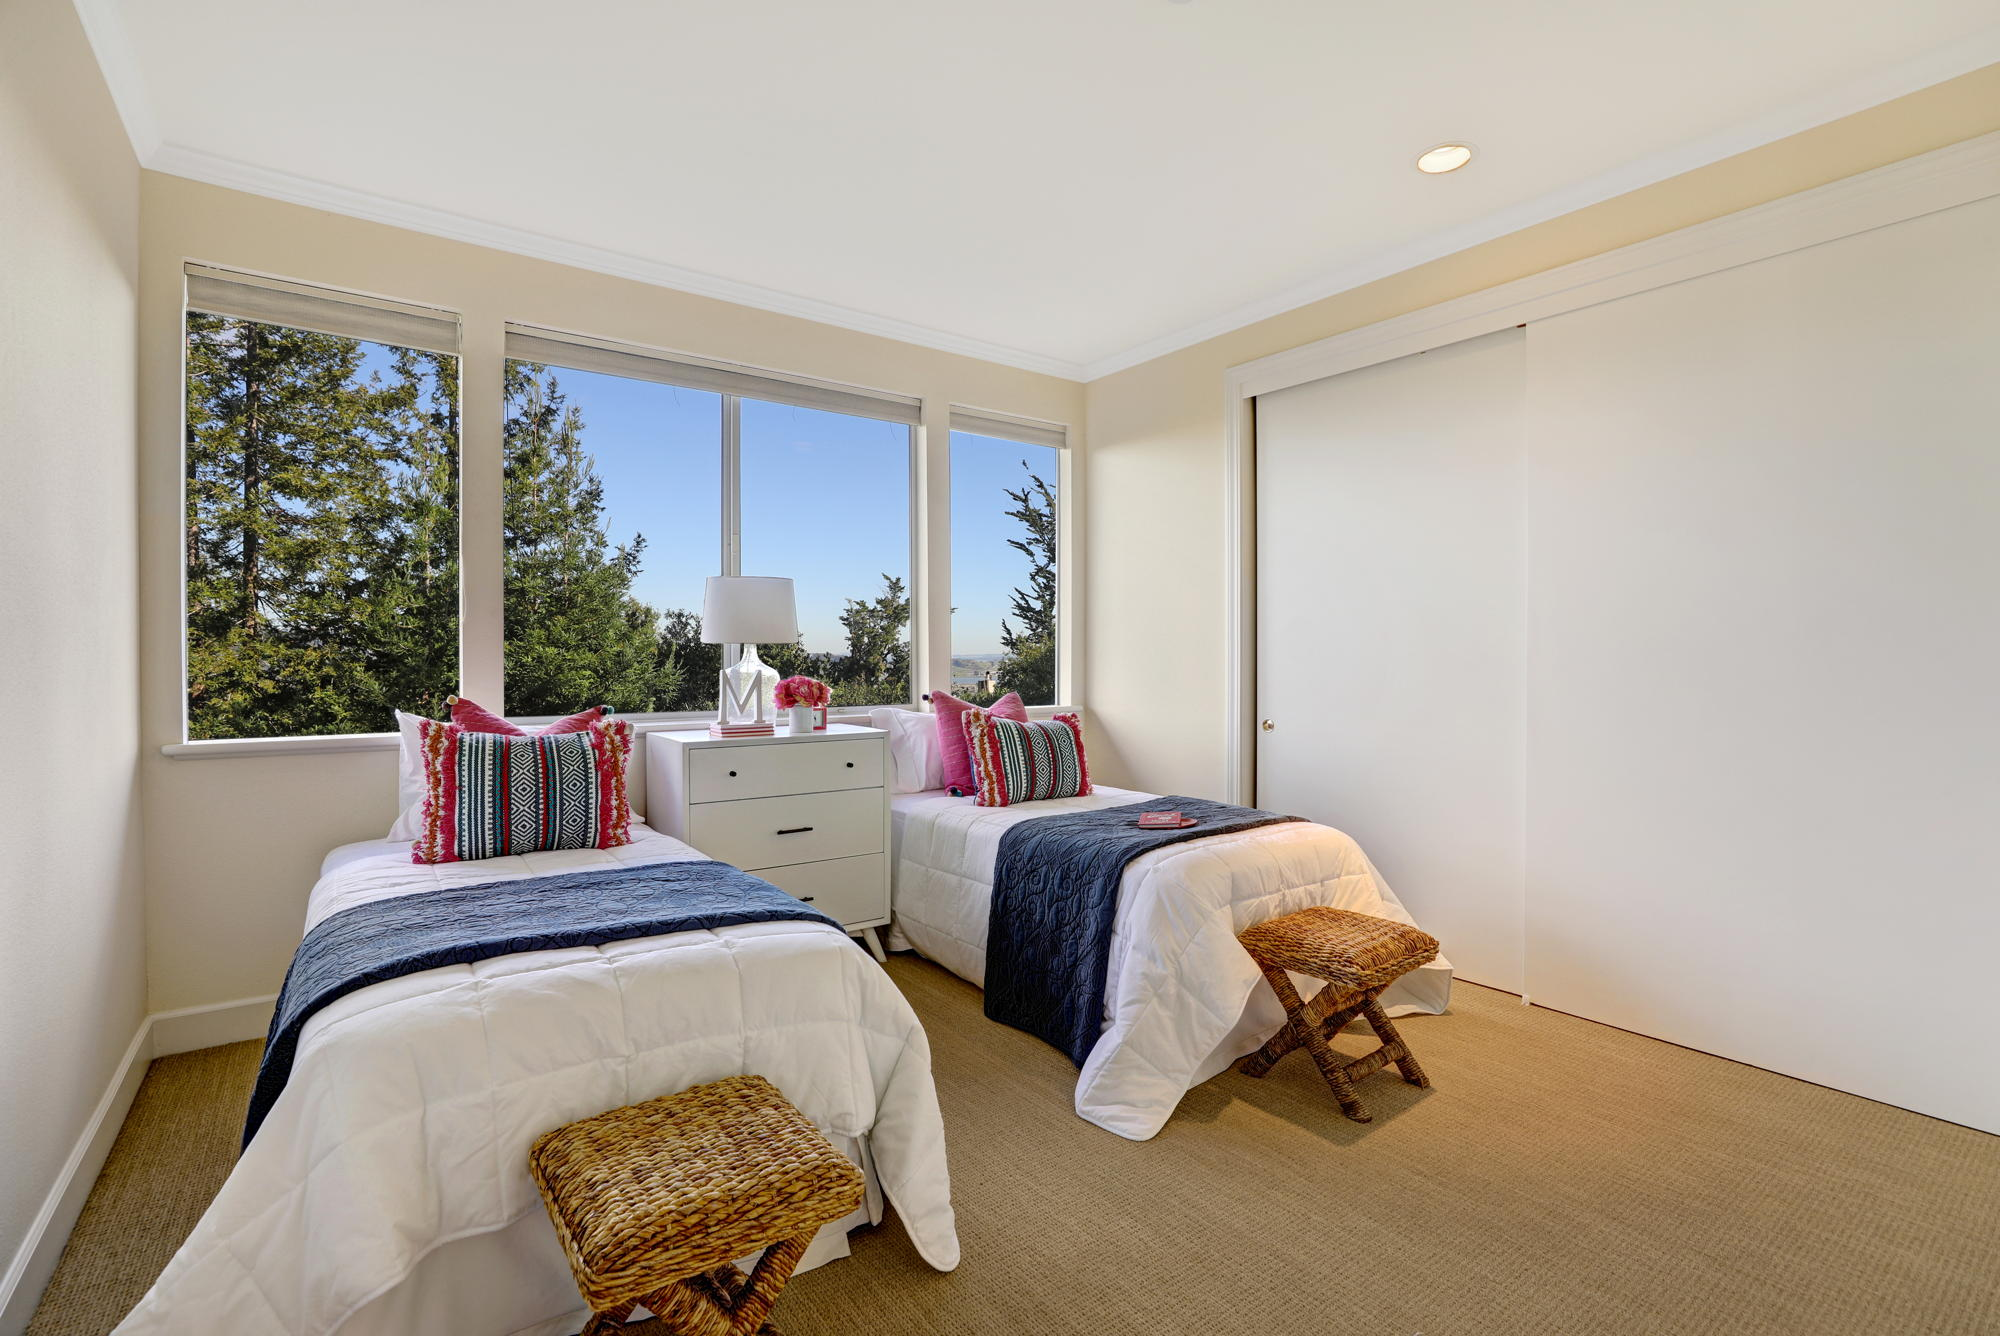 231 Marin Vista Larkspur #1 Realtor - 55 - Own Marin with Compass Real Estate.jpg